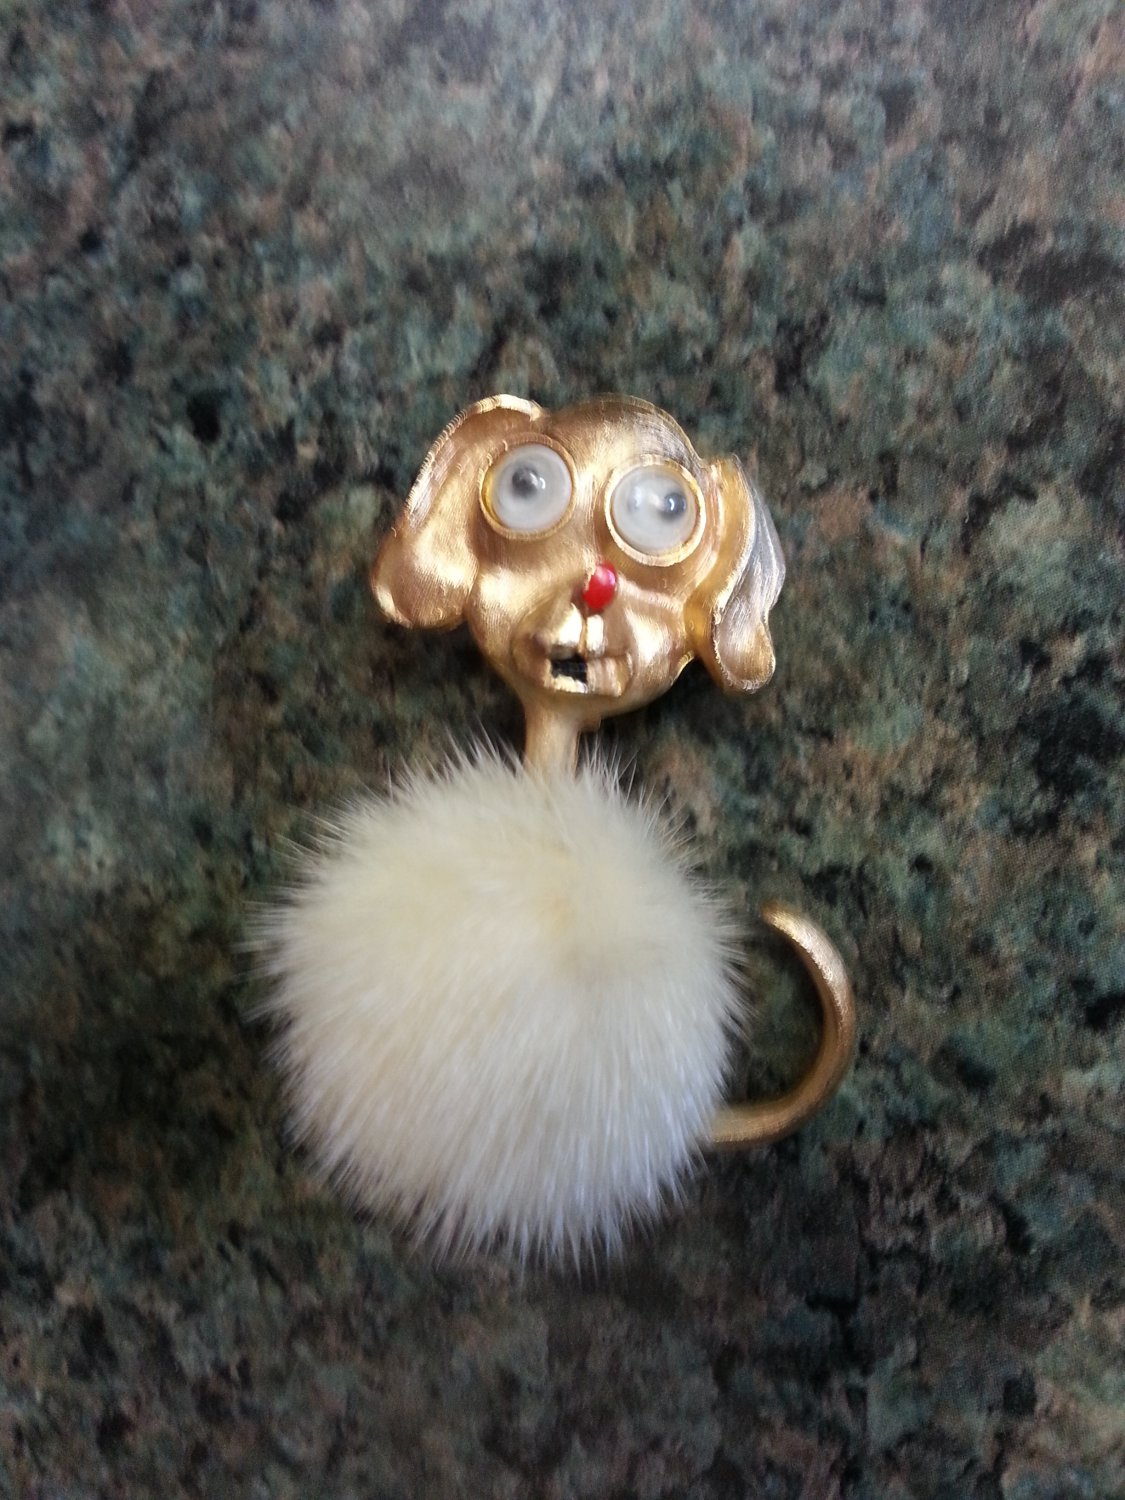 Vintage Mink Body Dog Pin Brooch with Googly Eyes signed by J.J.!